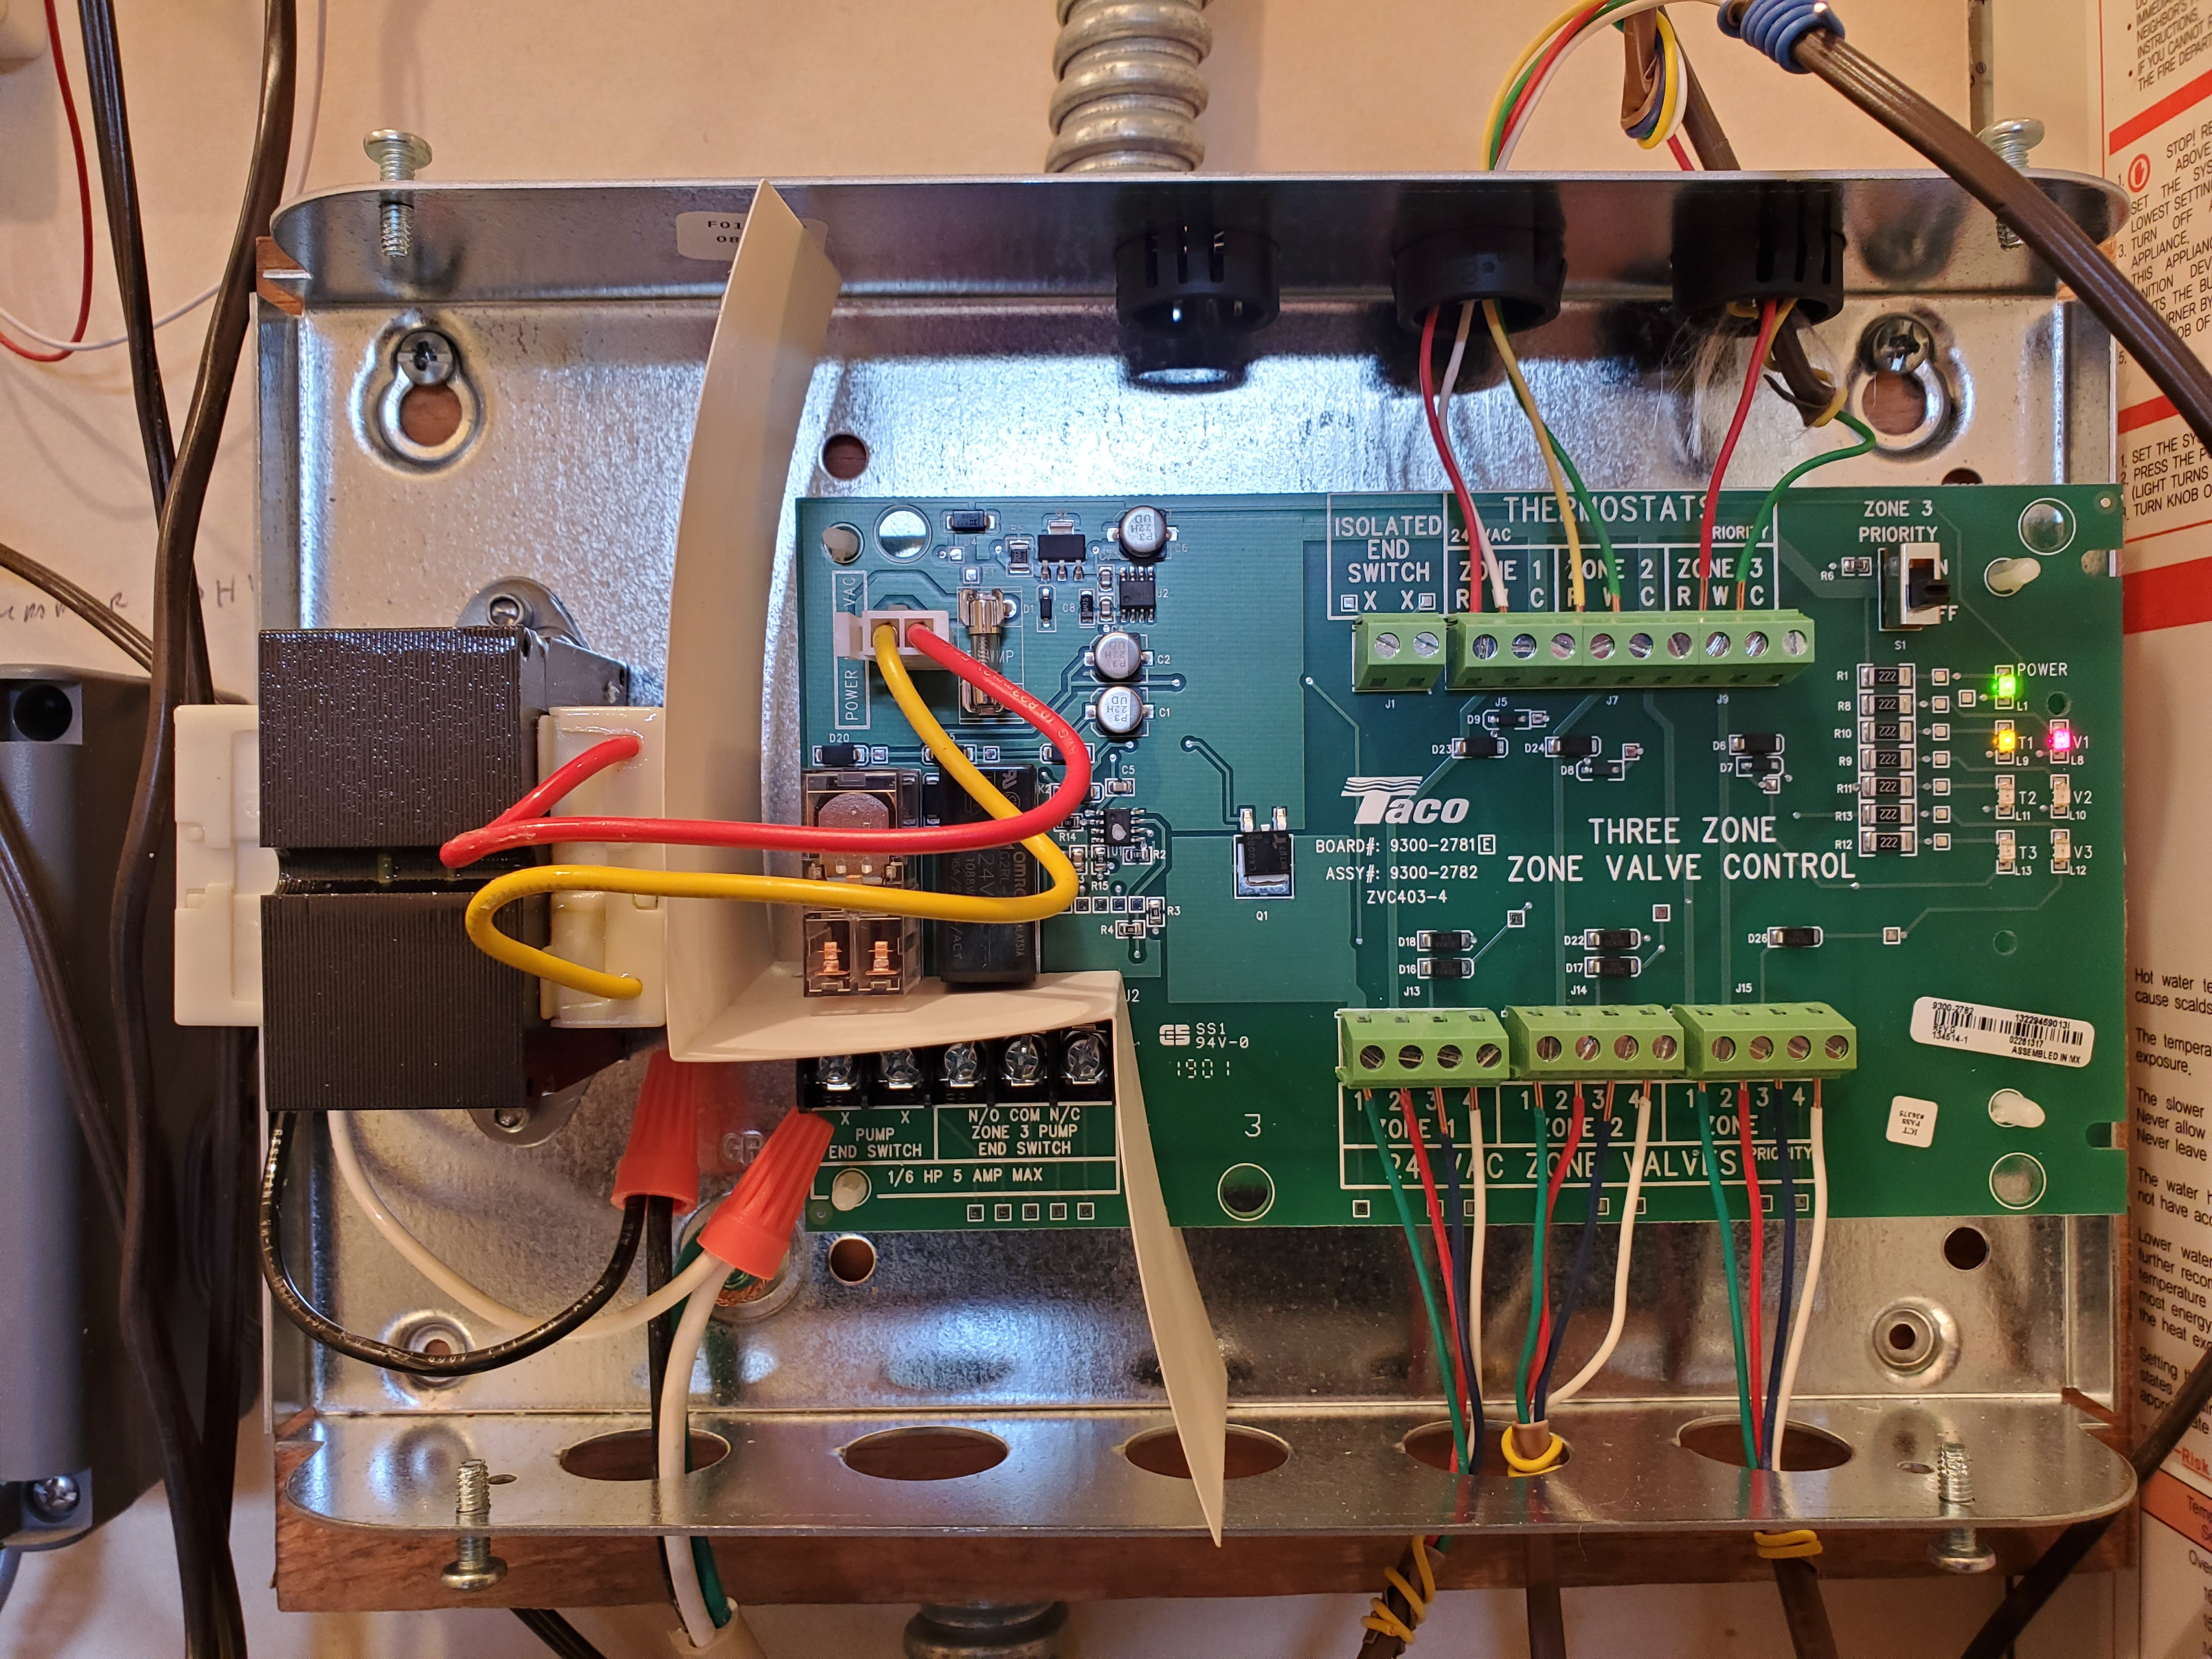 taco 503 switching relay wiring diagram taco s zone lights not coming on     heating help the wall  taco s zone lights not coming on